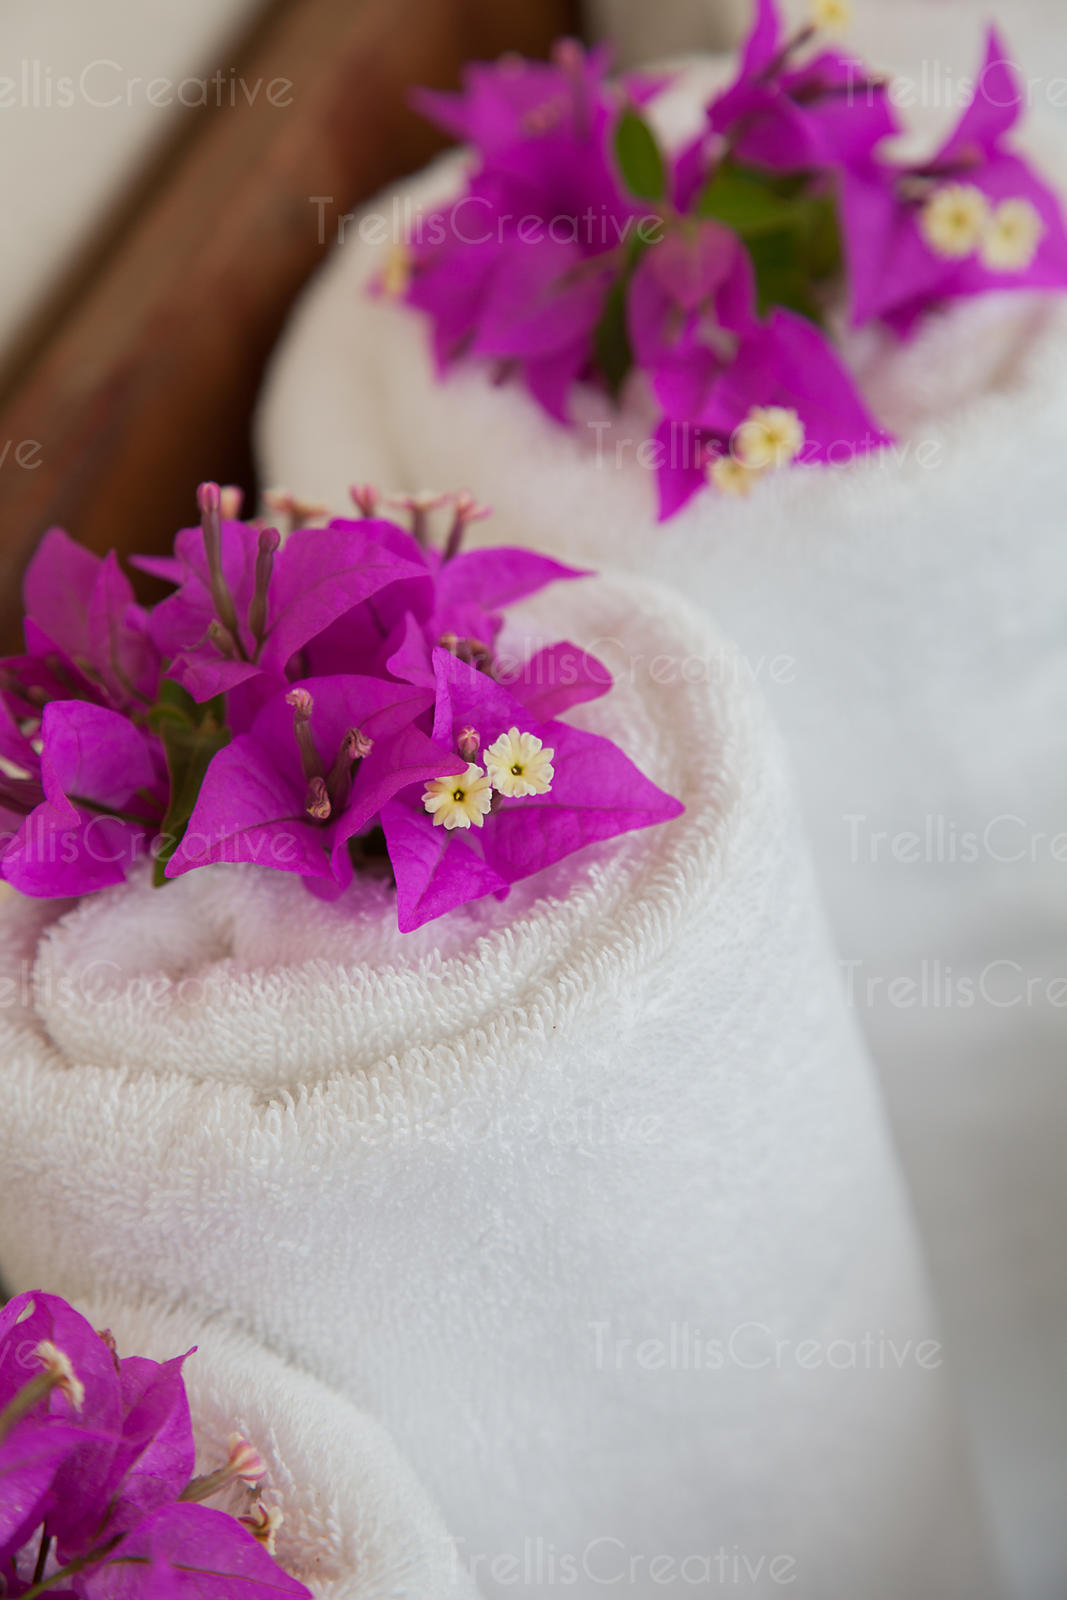 Accents of bougainvillea flowers on fresh white towels at the spa